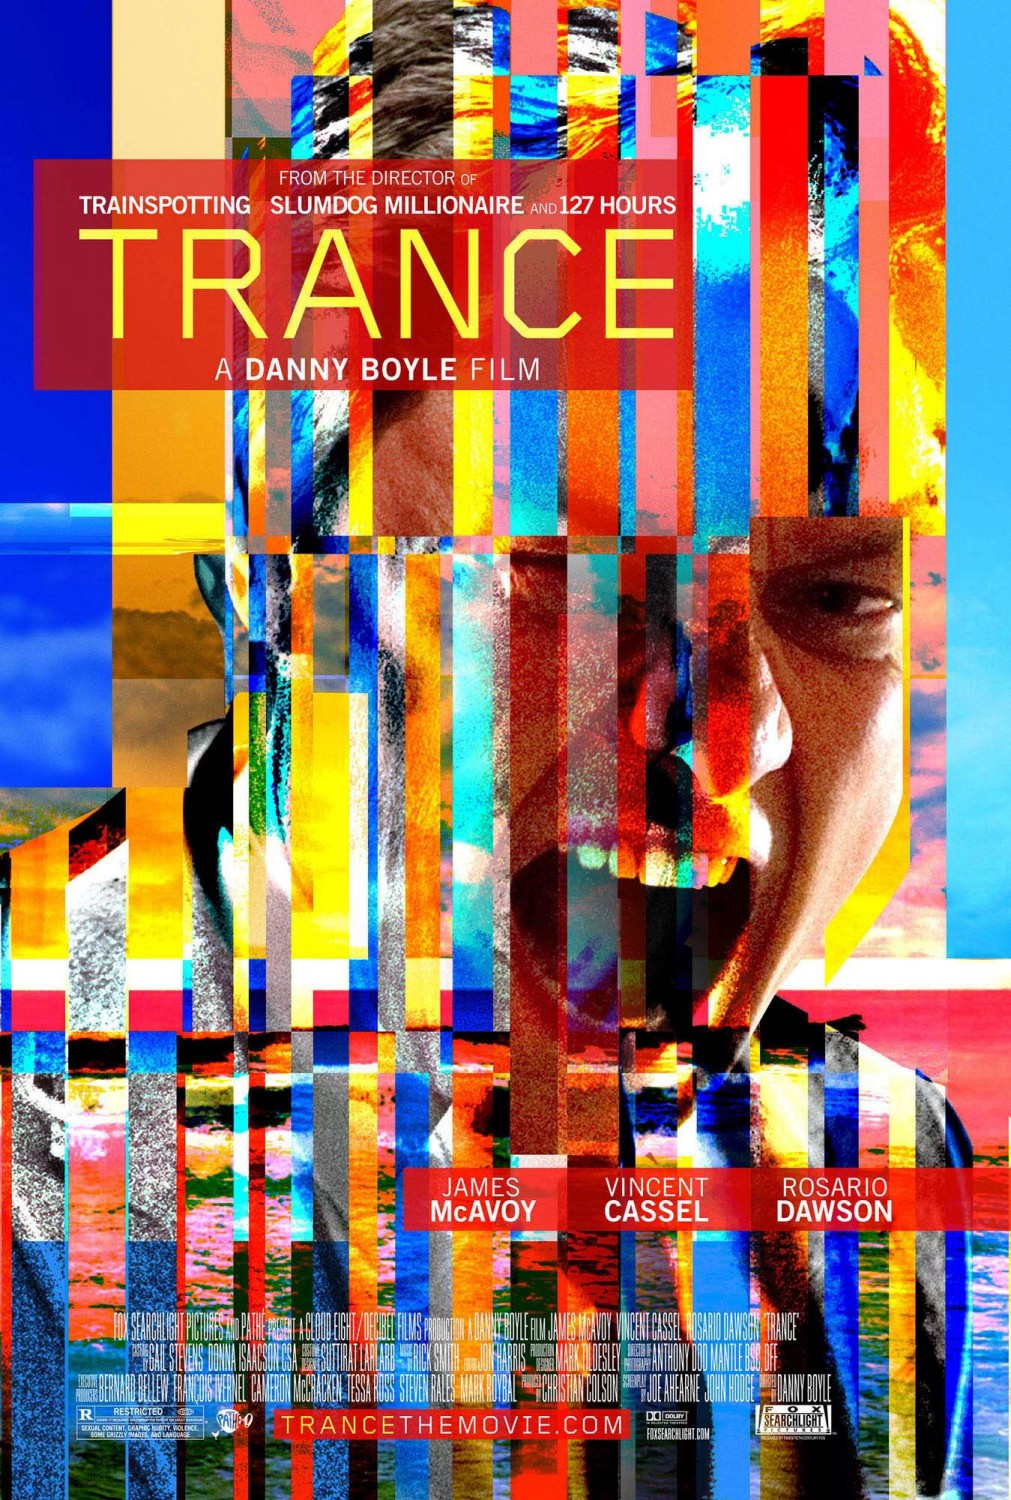 trance_movie_poster